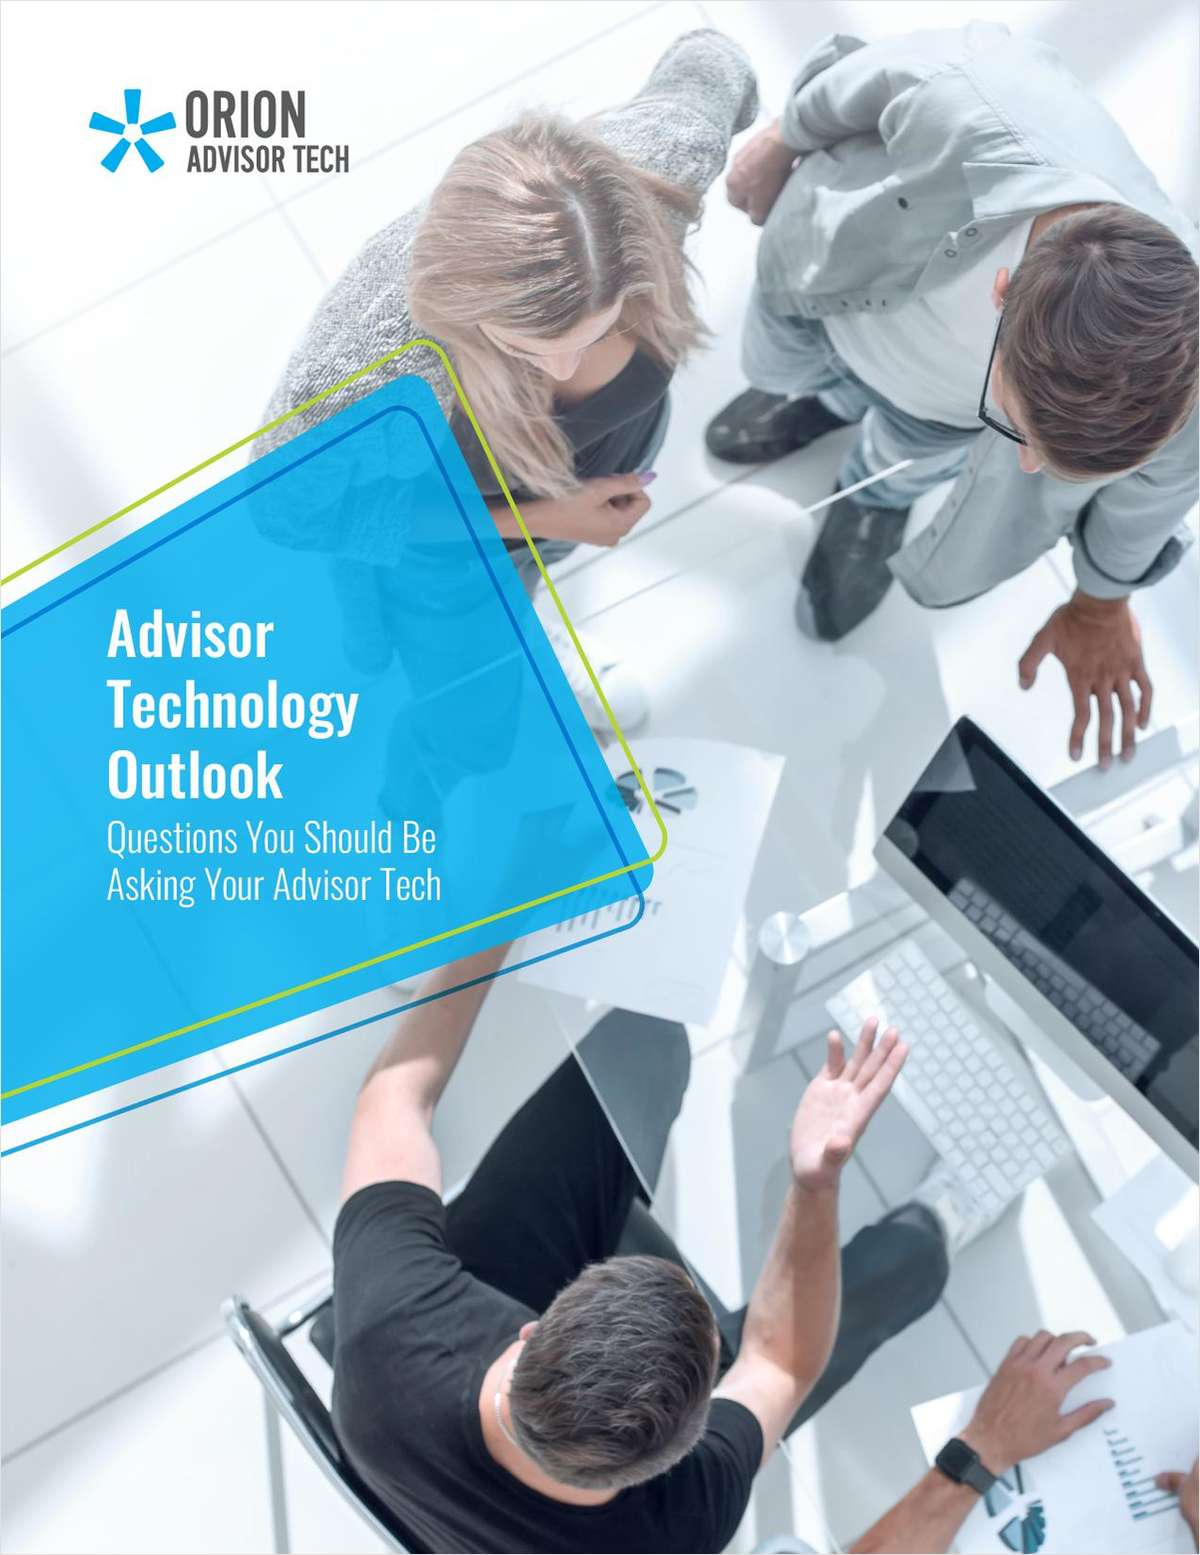 Advisor Technology Outlook: Questions You Should Be Asking Your Advisor Tech